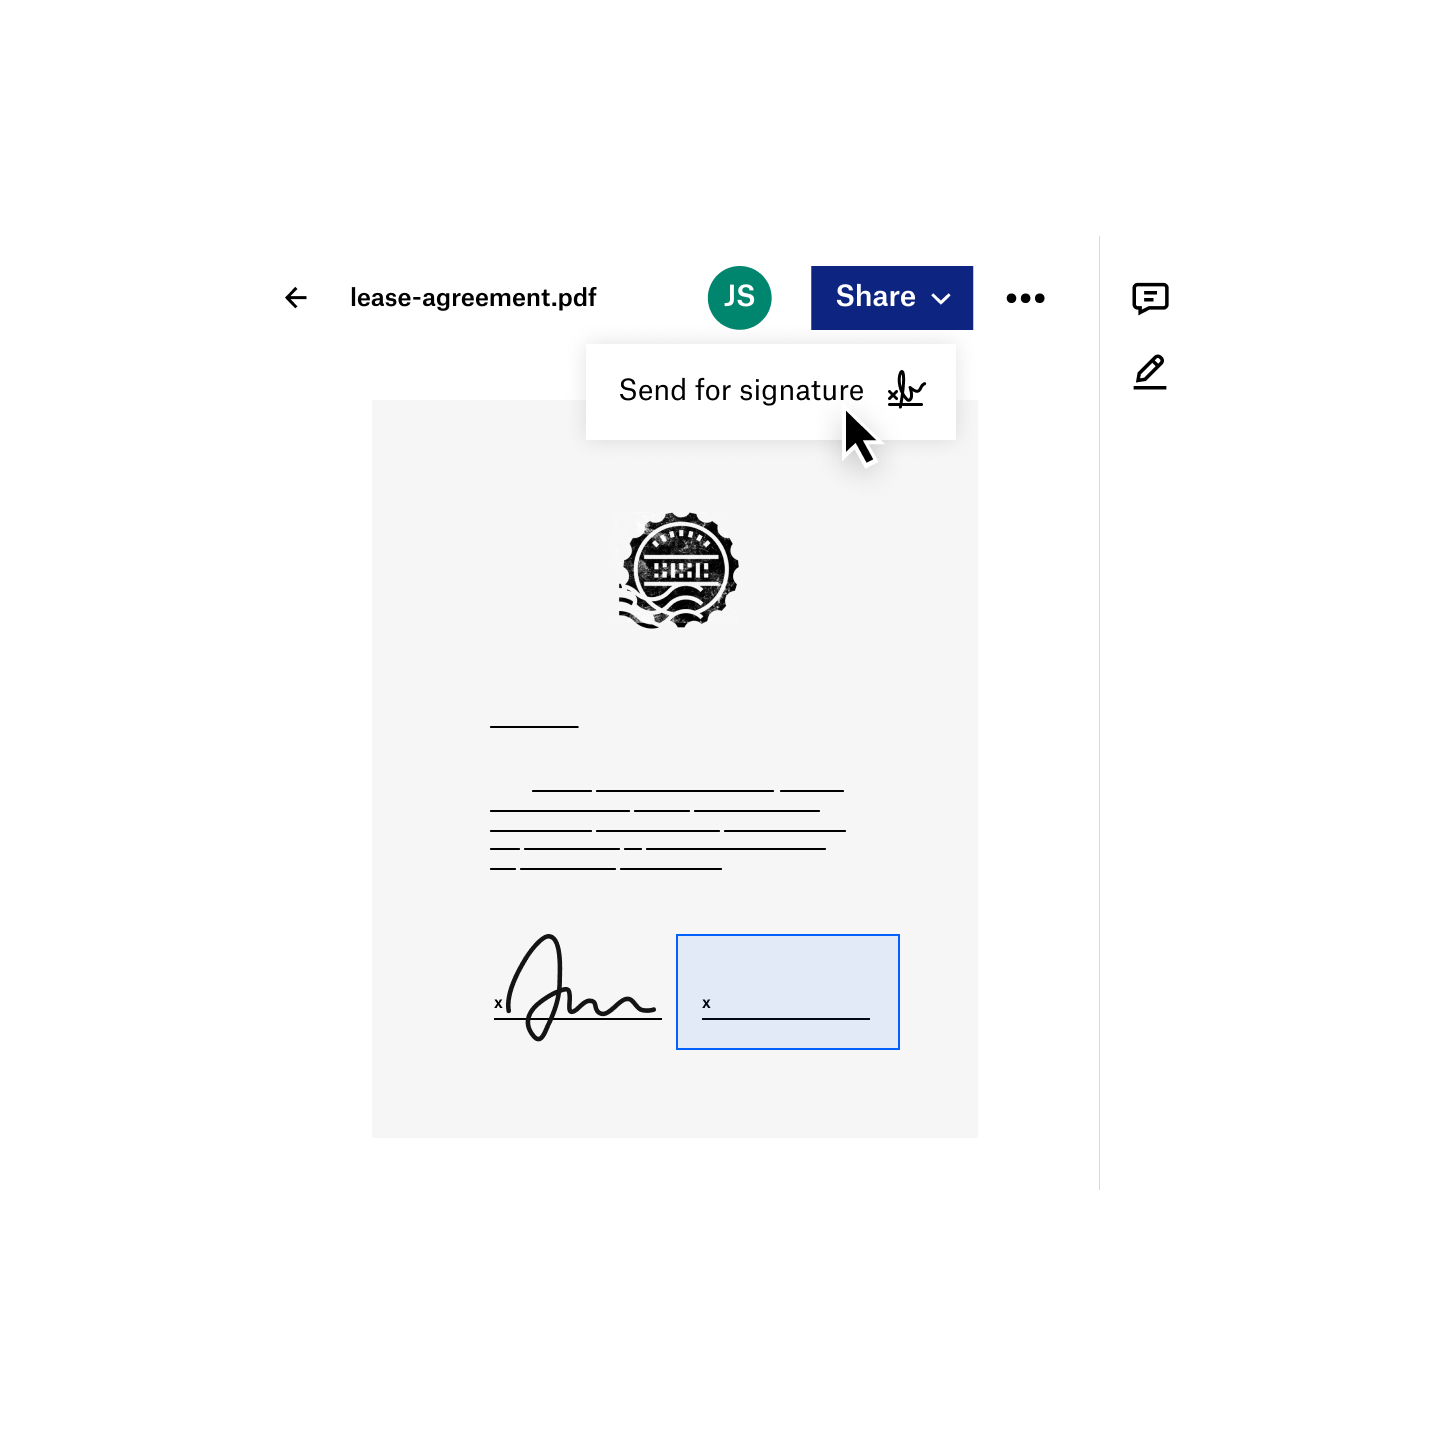 A user shares a pdf for an electronic signature within Dropbox